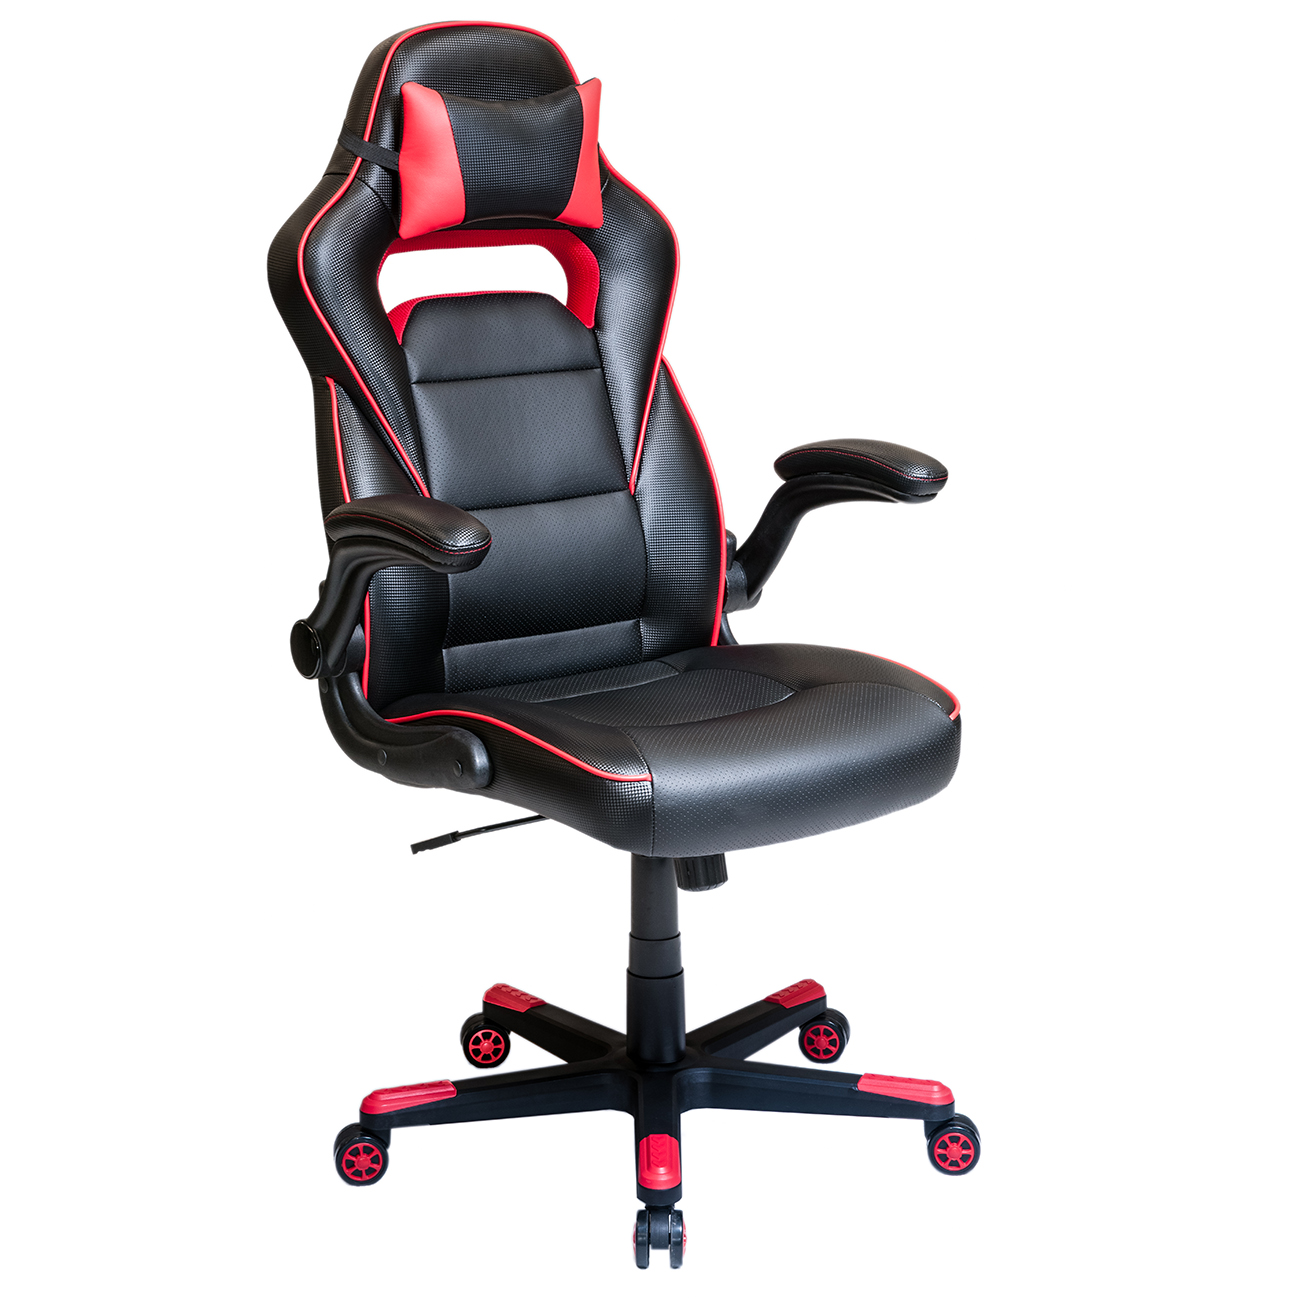 Techni Mobili Adjustable Office Chair with Detachable Headrest Pillow and Flip Up Arms, Red (RTA-2019-BK)